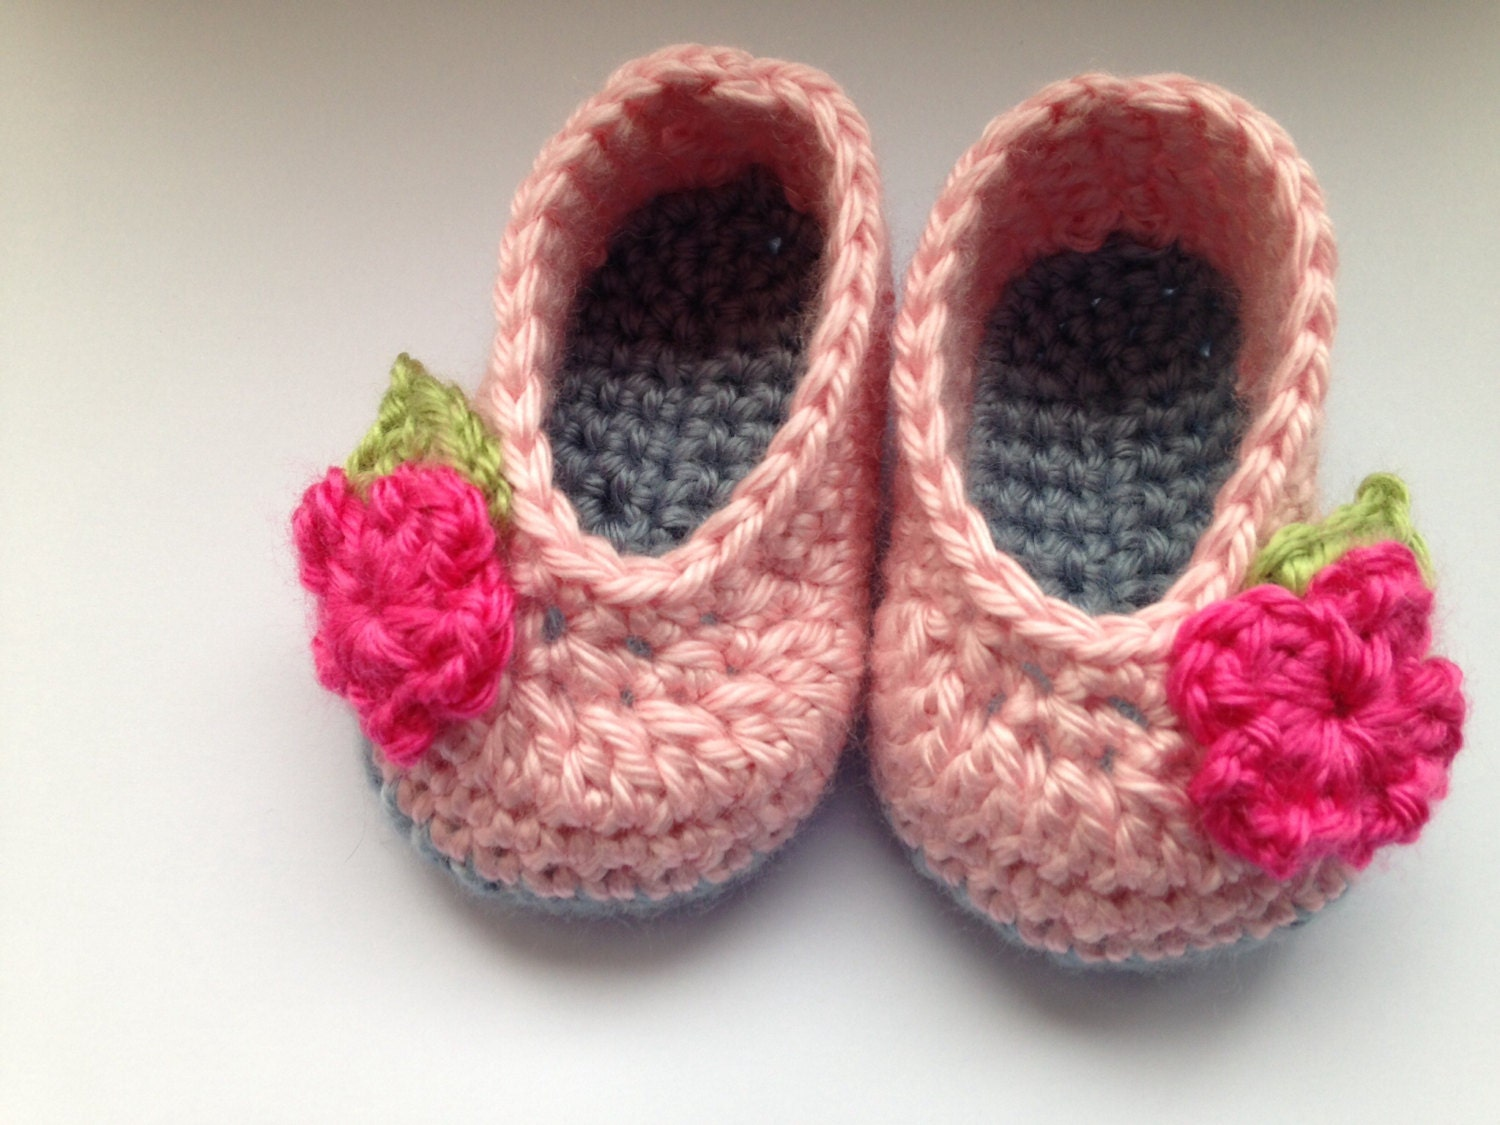 Baby shoes pink baby shoes pink baby booties crochet baby shoes pink crochet baby shoes crib shoes baby shoes baby booties